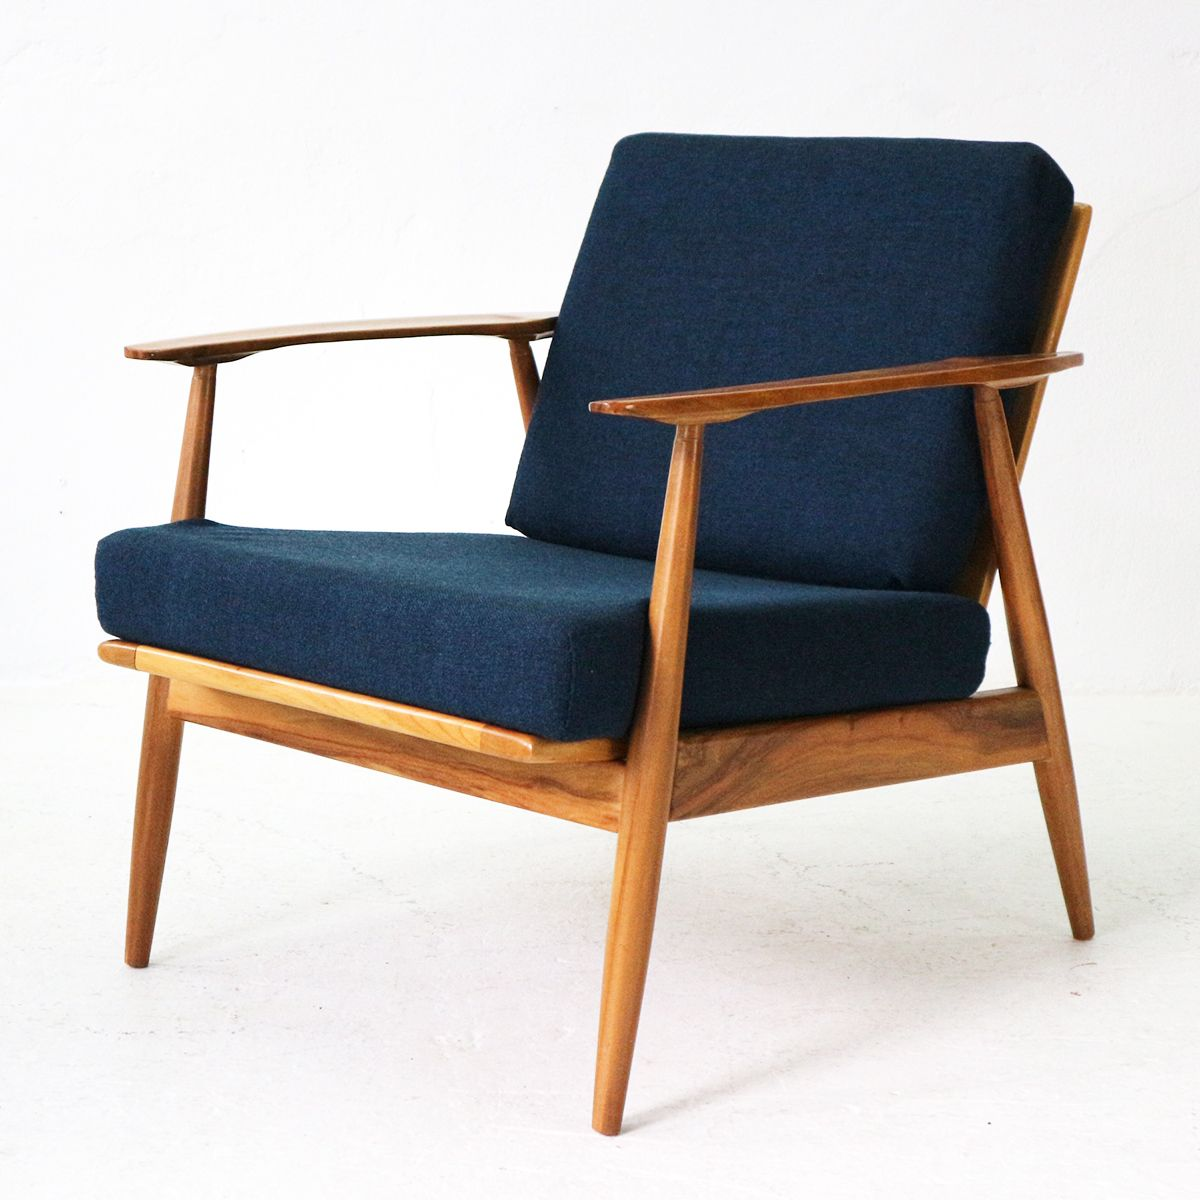 Mid Century Walnut Wood Lounge Chair 1960s Bei Pamono Kaufen